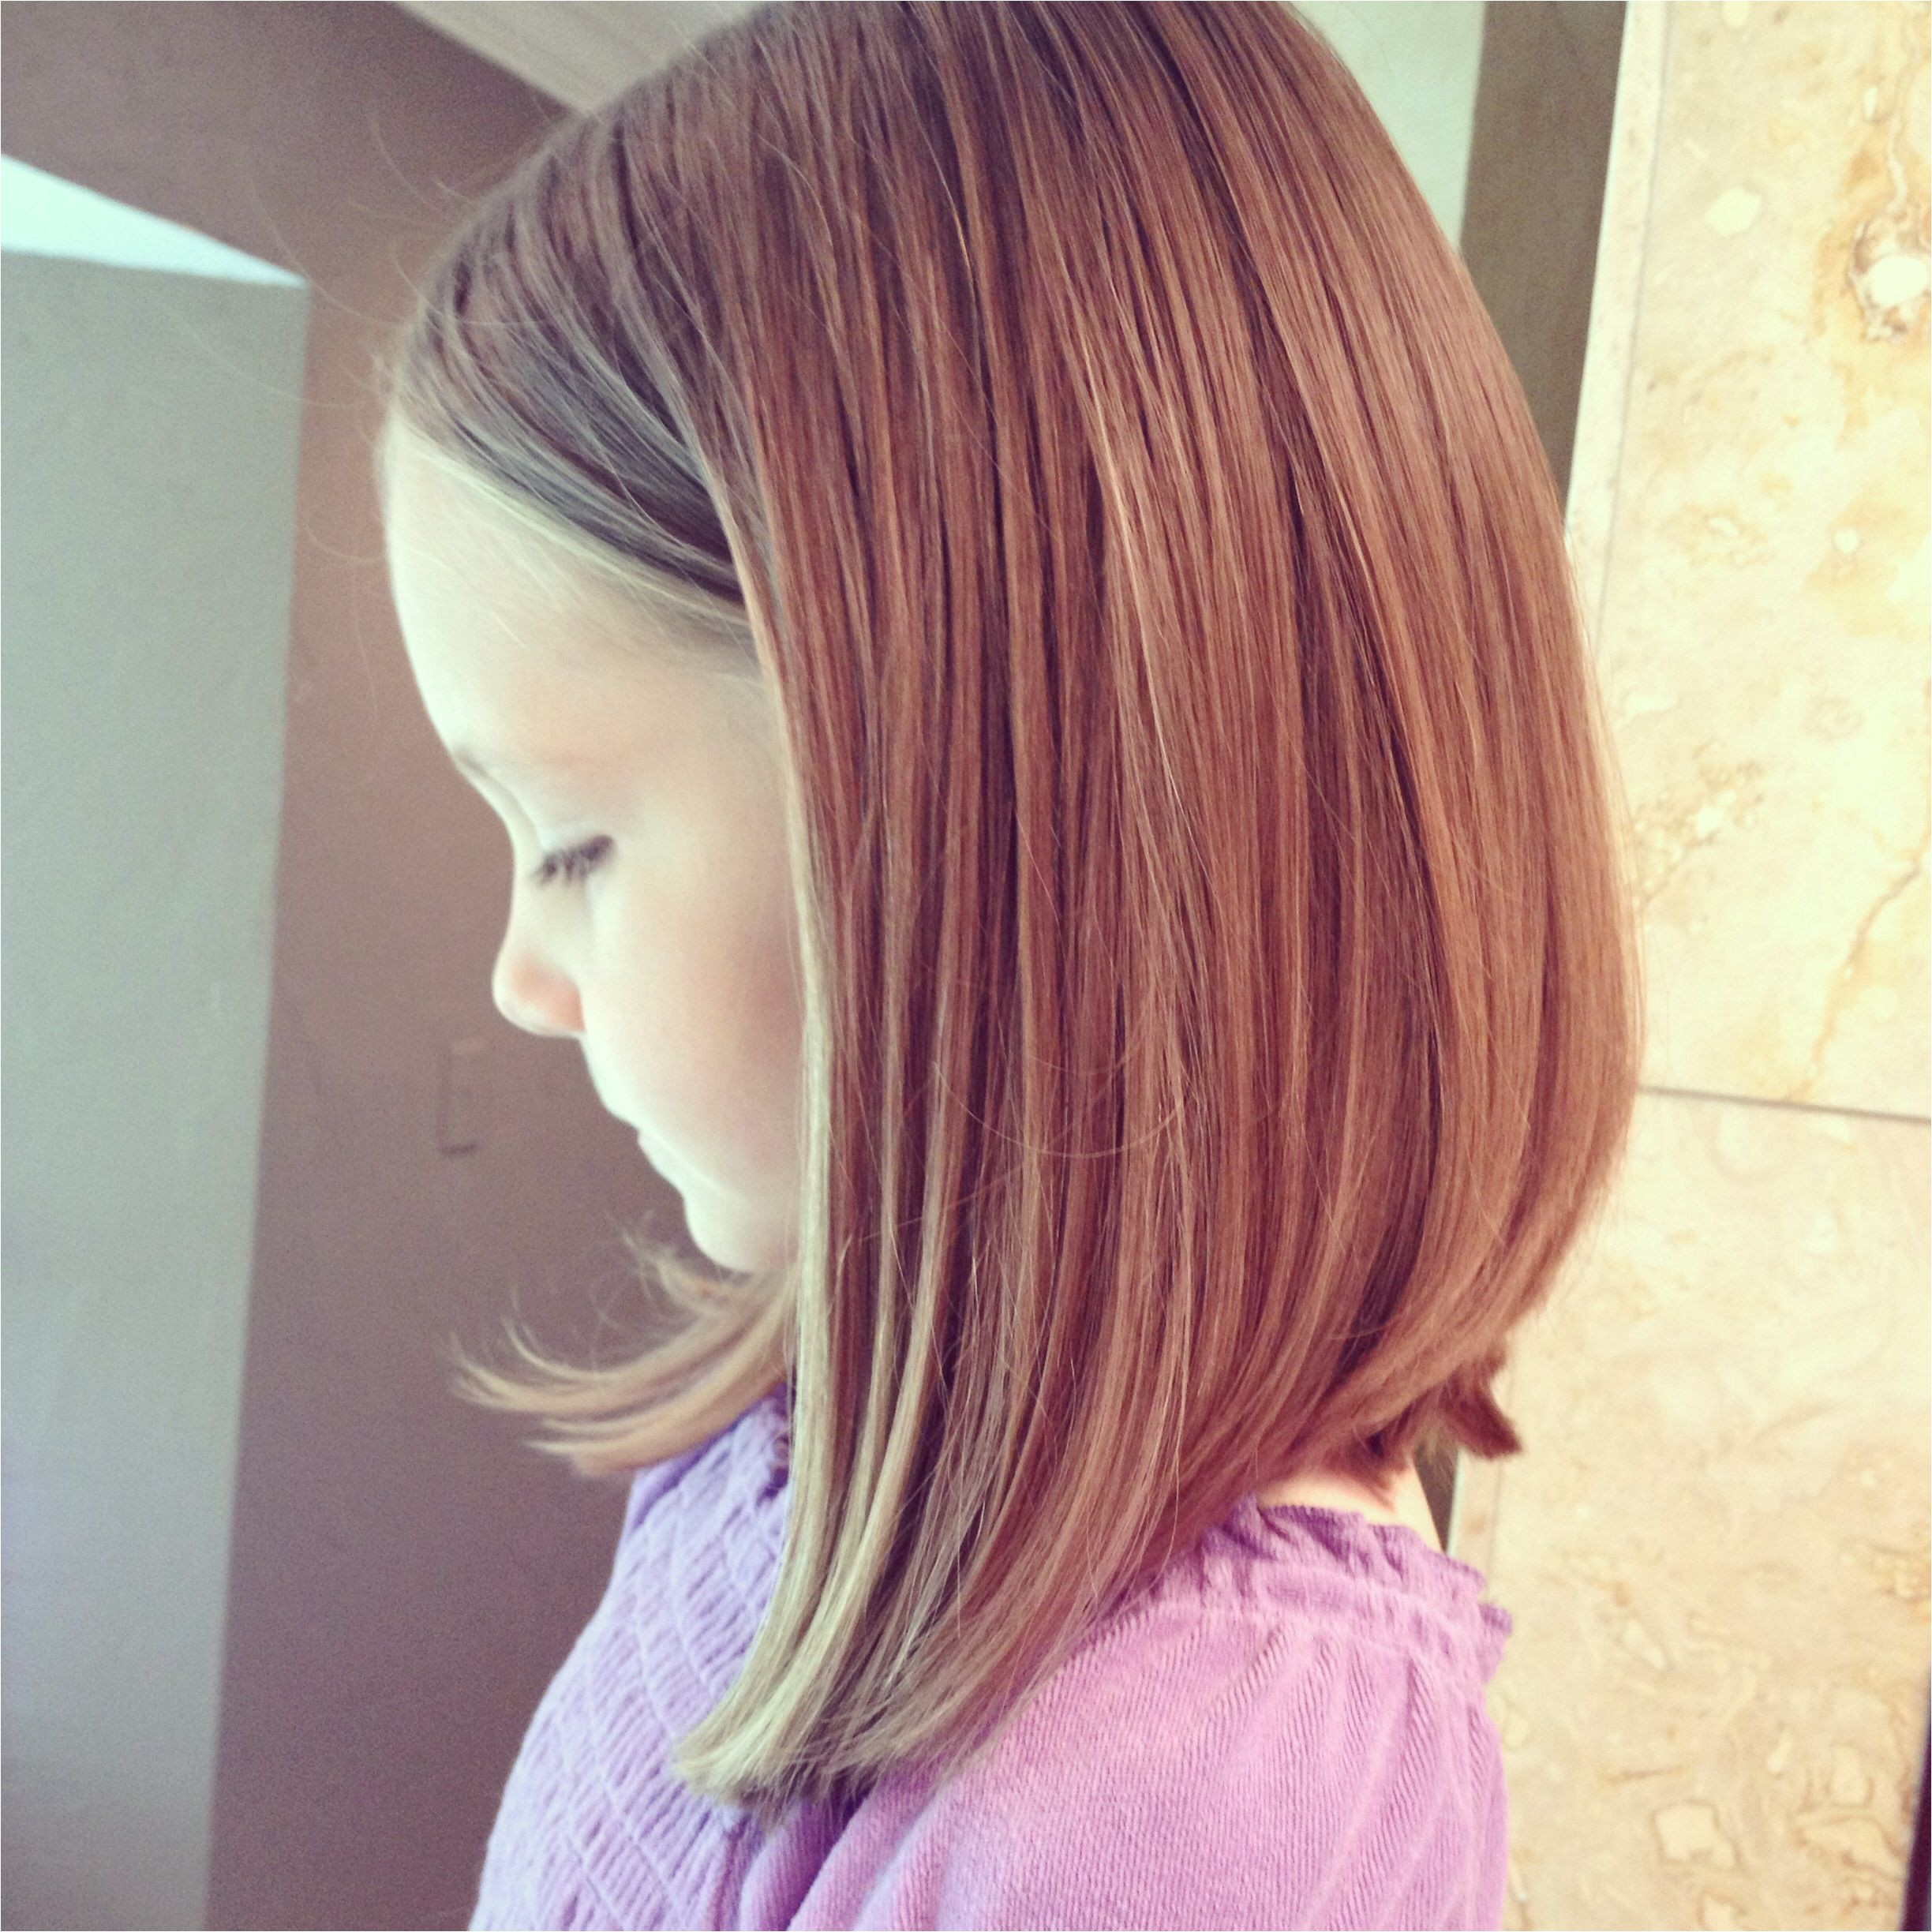 Cute Hairstyles for 8 Year Old Girls 9 Best and Cute Bob Haircuts for Kids Kids Haircuts